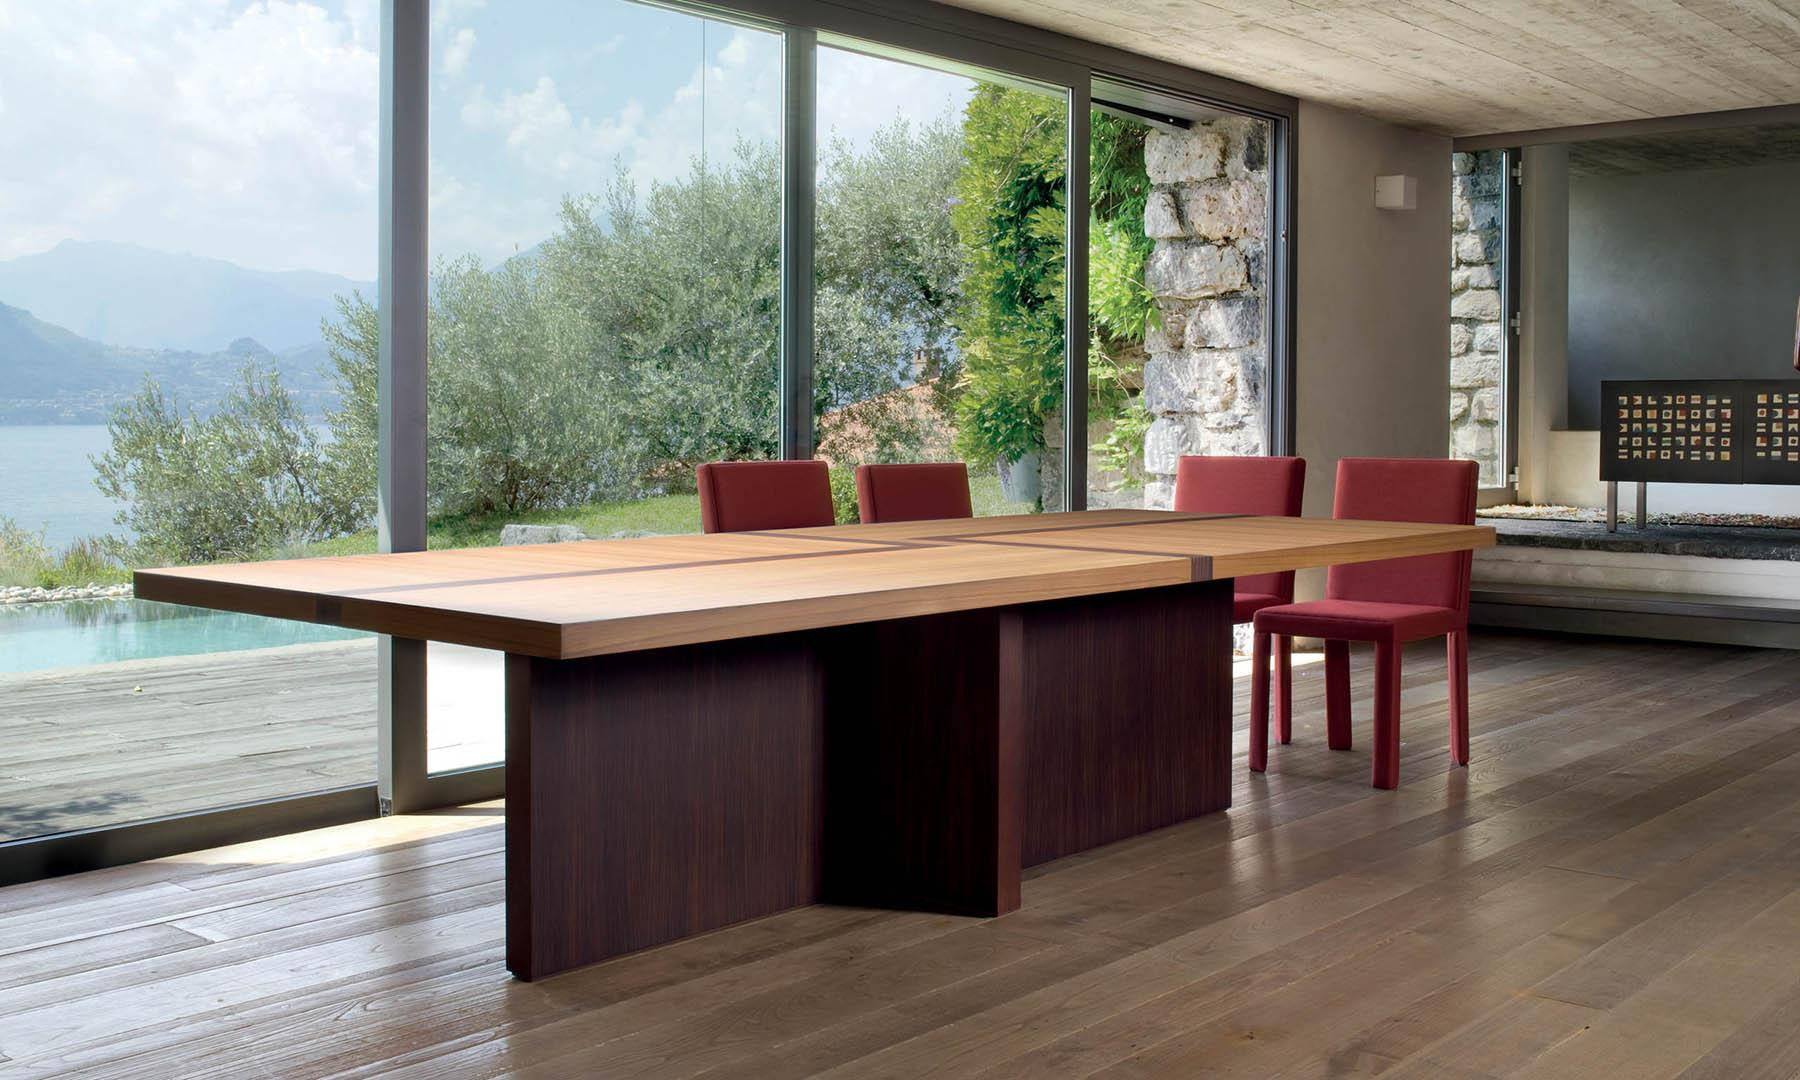 laurameroni bd 07 rectangular table in teak and rosewood wood with inlays on top